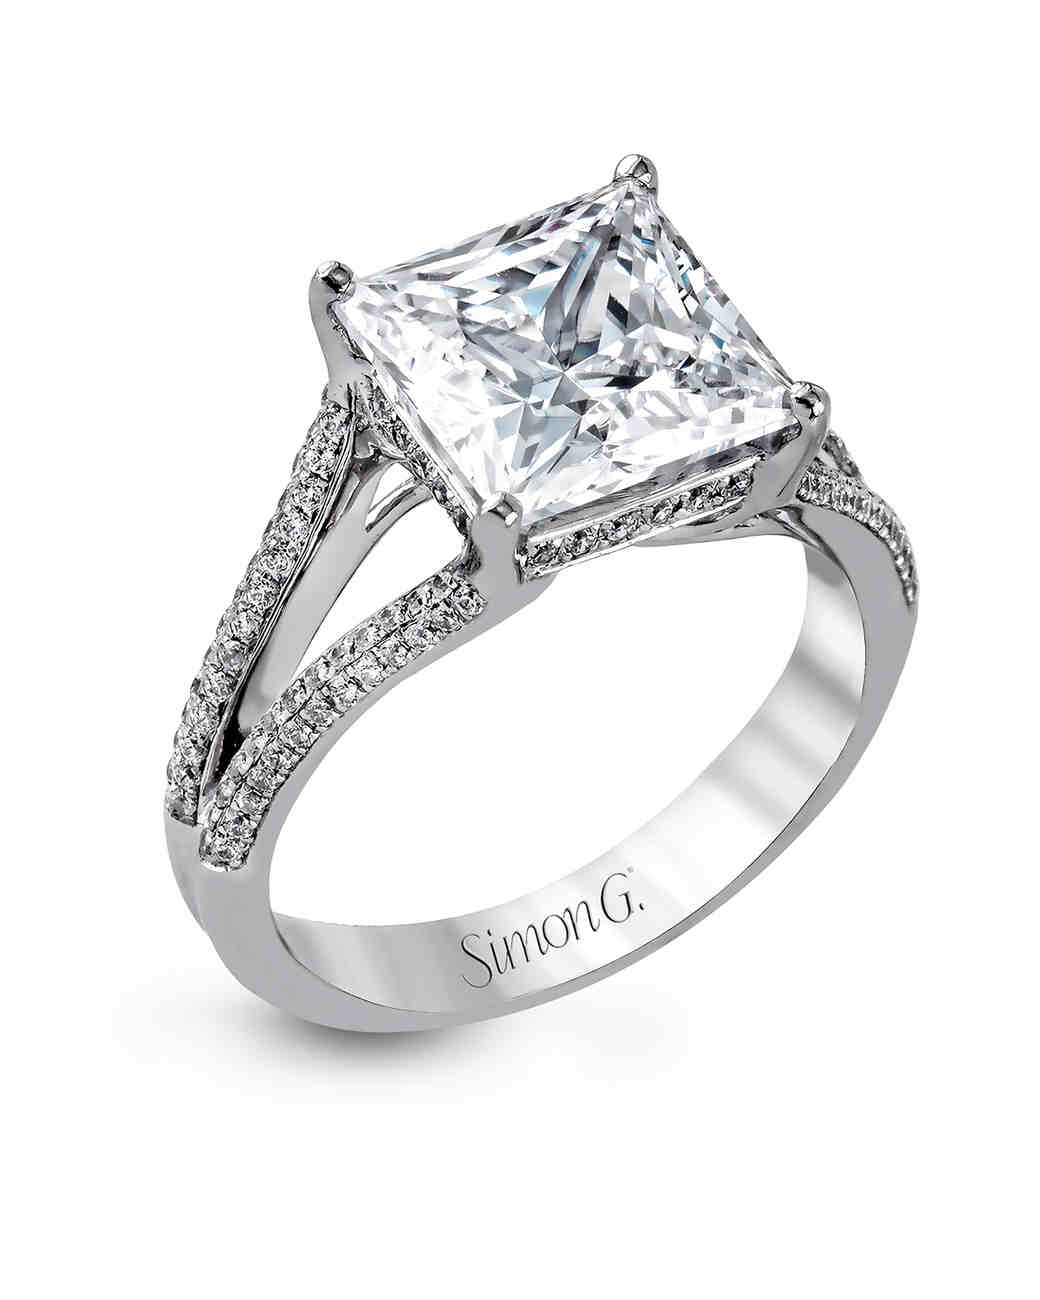 Simon G. Princess-Cut Engagement Ring